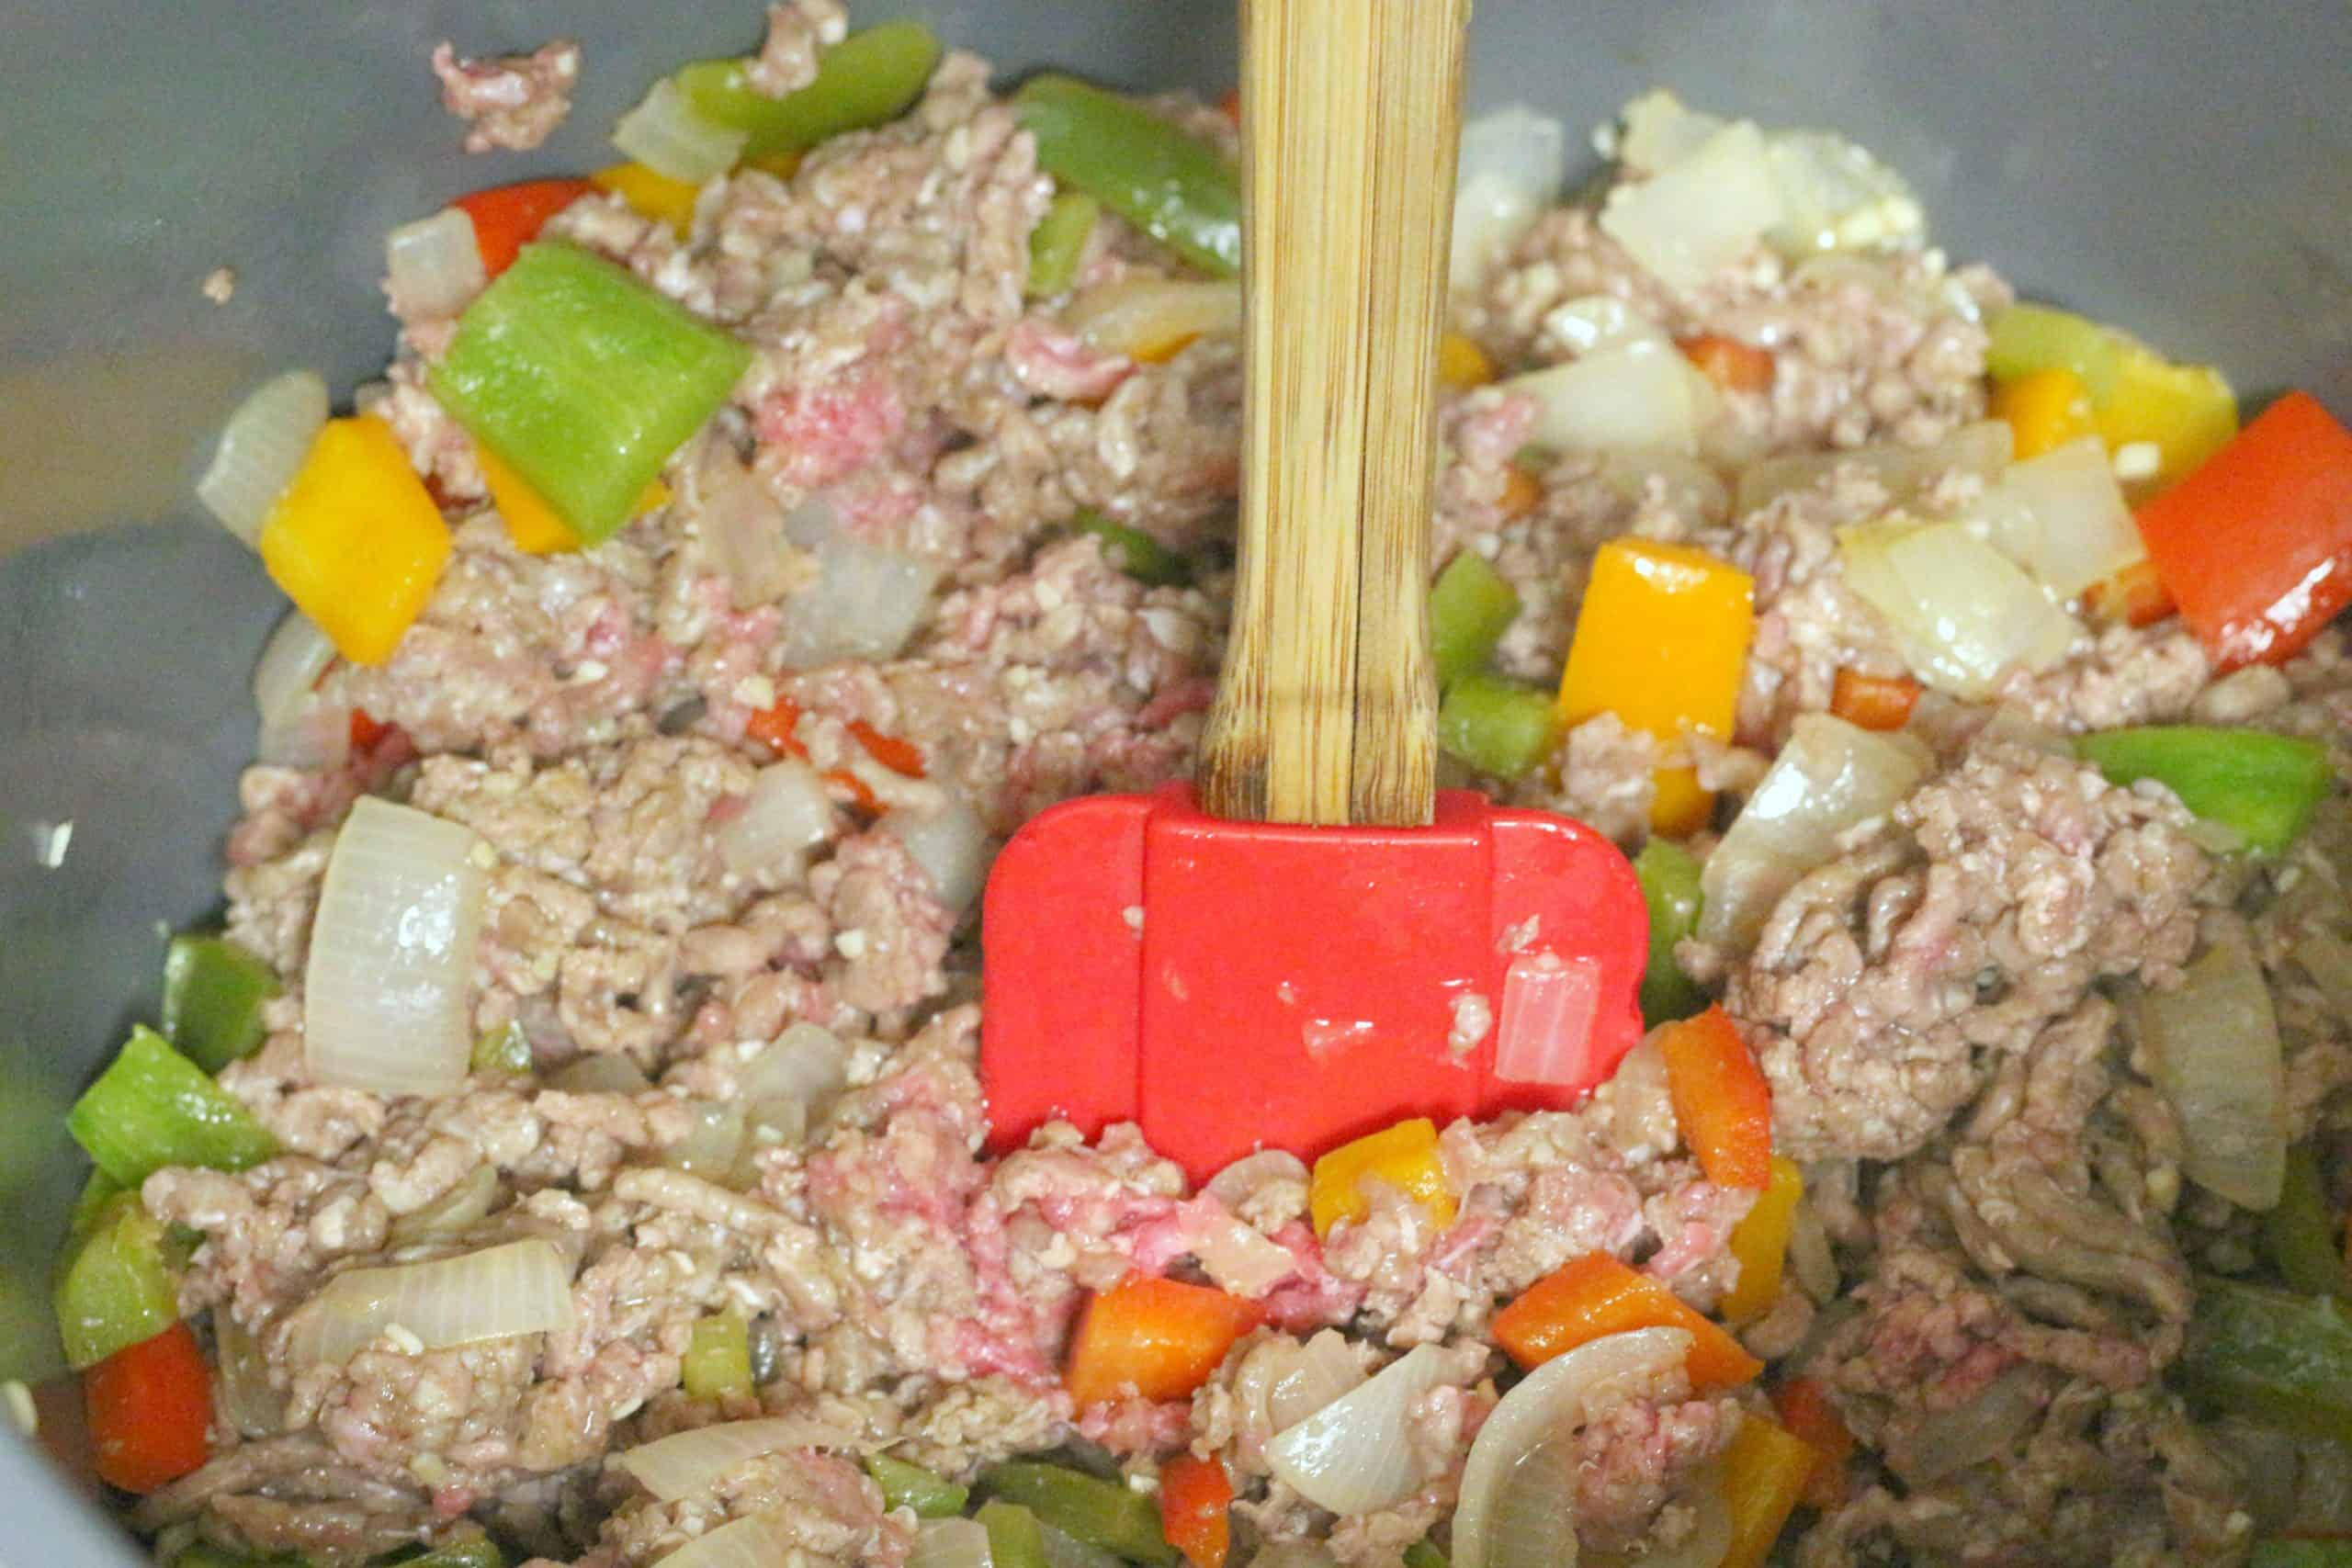 Ground beef, peppers and onions sauteing.